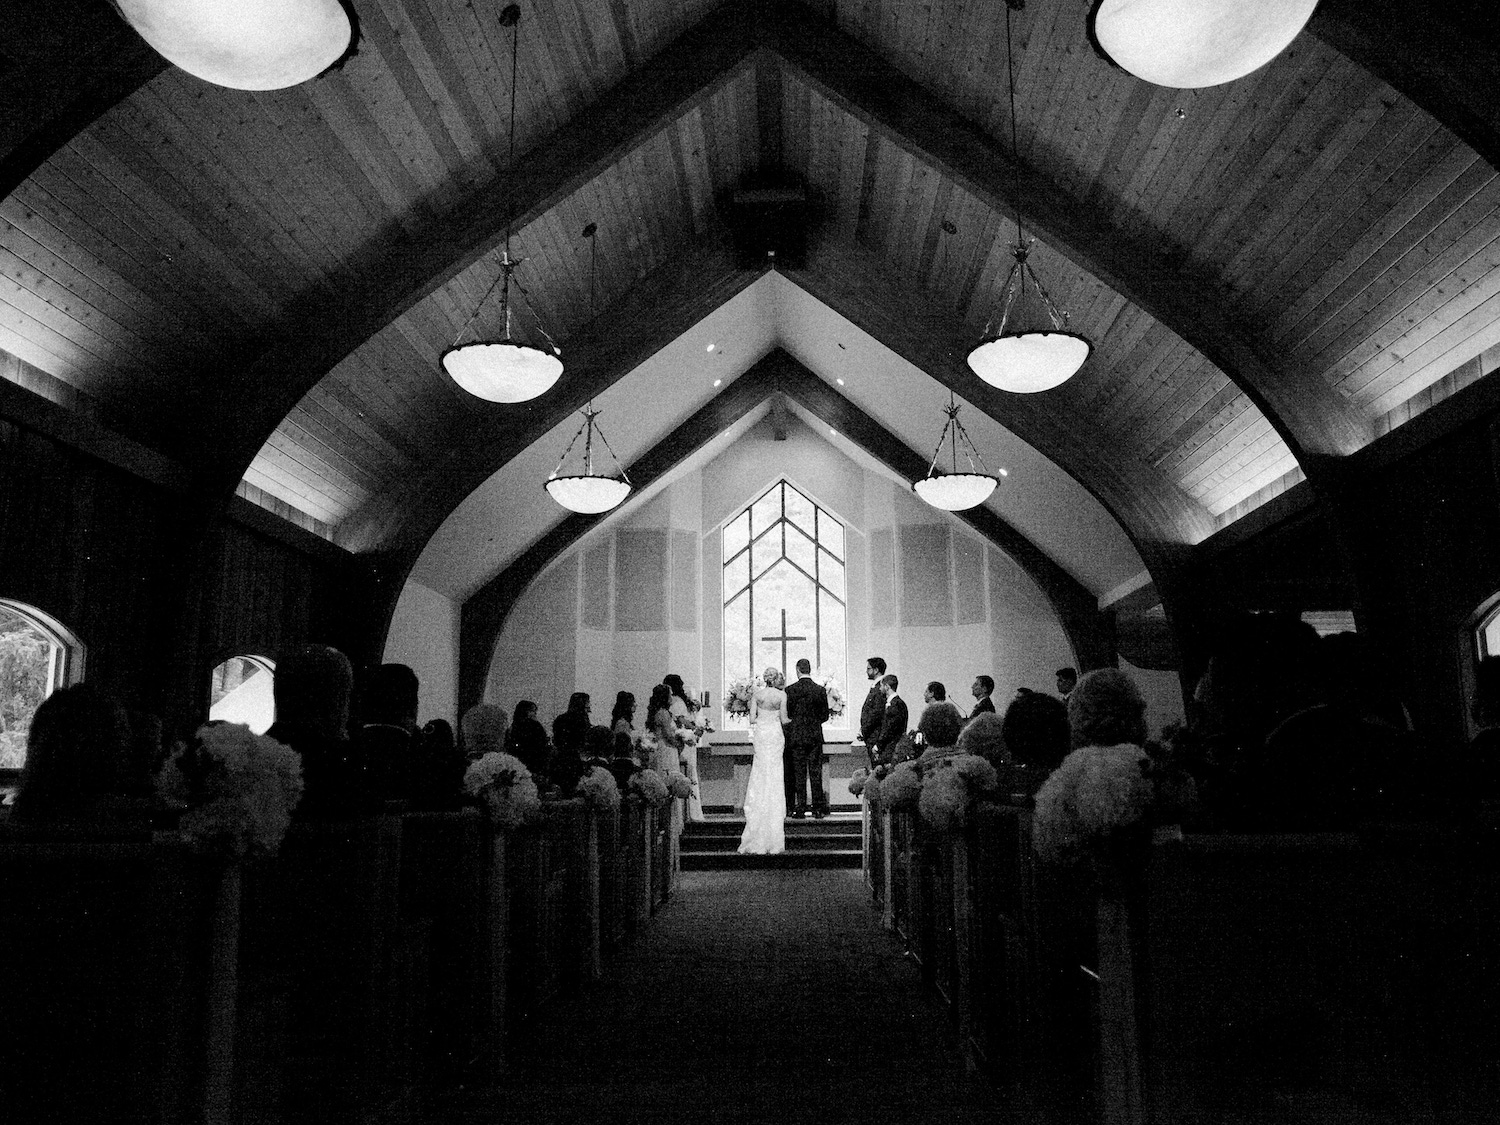 Wedding ceremony at Vail Interfaith Chapel in black and white